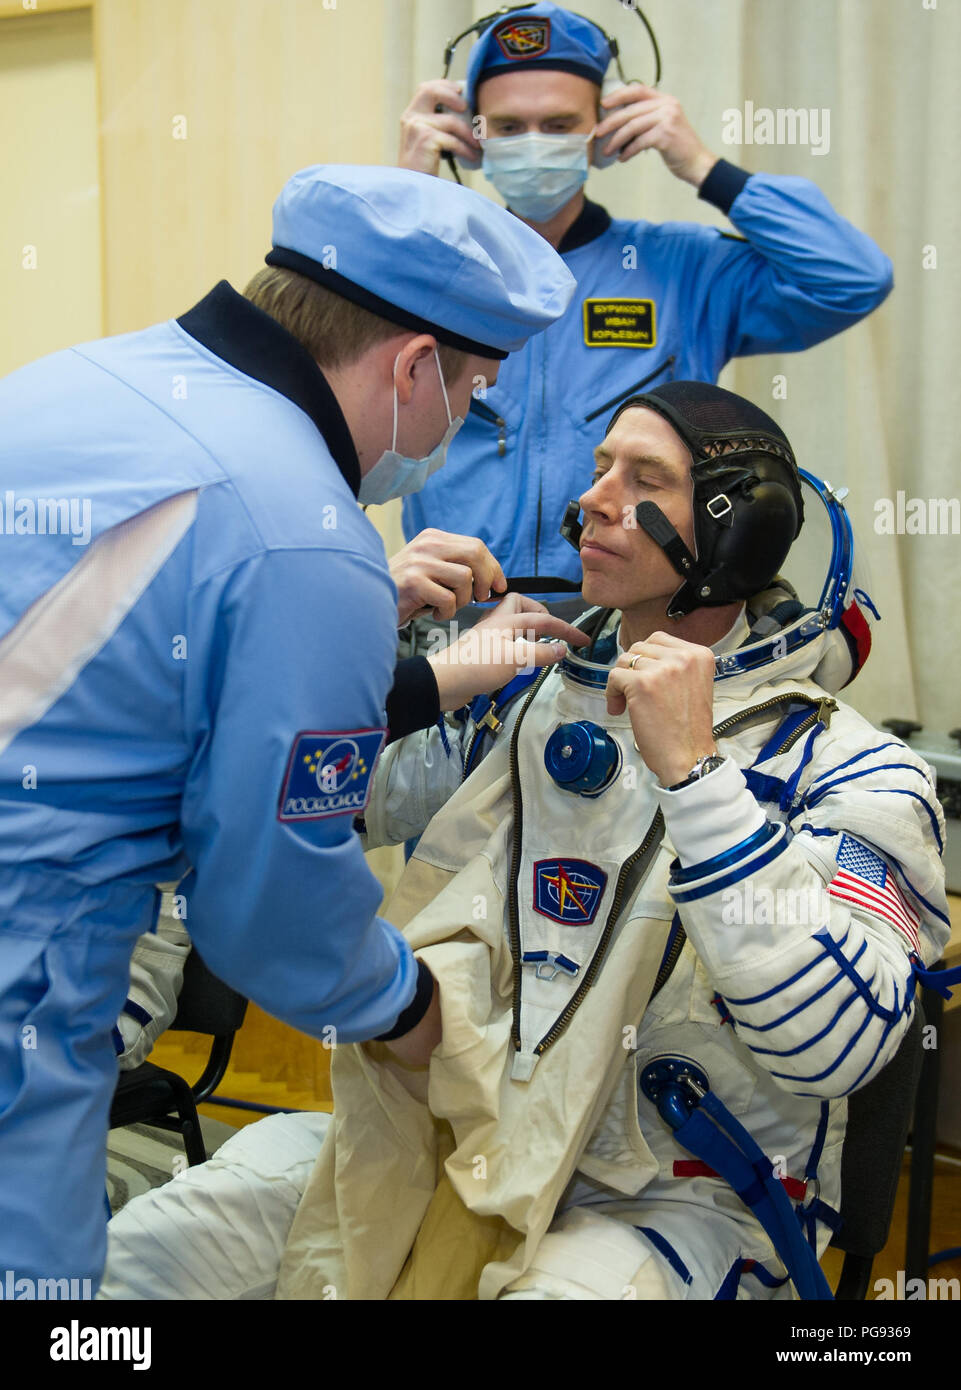 Expedition 55 flight engineer Drew Feustel of NASA is helped into his Russian Sokol suit as he and fellow crewmates, Soyuz Commander Oleg Artemyev of Roscosmos and Ricky Arnold of NASA prepare for their Soyuz launch to the International Space Station Wednesday, March 21, 2018 in Baikonur, Kazakhstan.  Feustel, Artemyev, and Arnold launched aboard the Soyuz MS-08 spacecraft at 1:44 p.m. Eastern time (11:44 p.m. Baikonur time) on March 21 to begin their journey to the International Space Station. - Stock Image